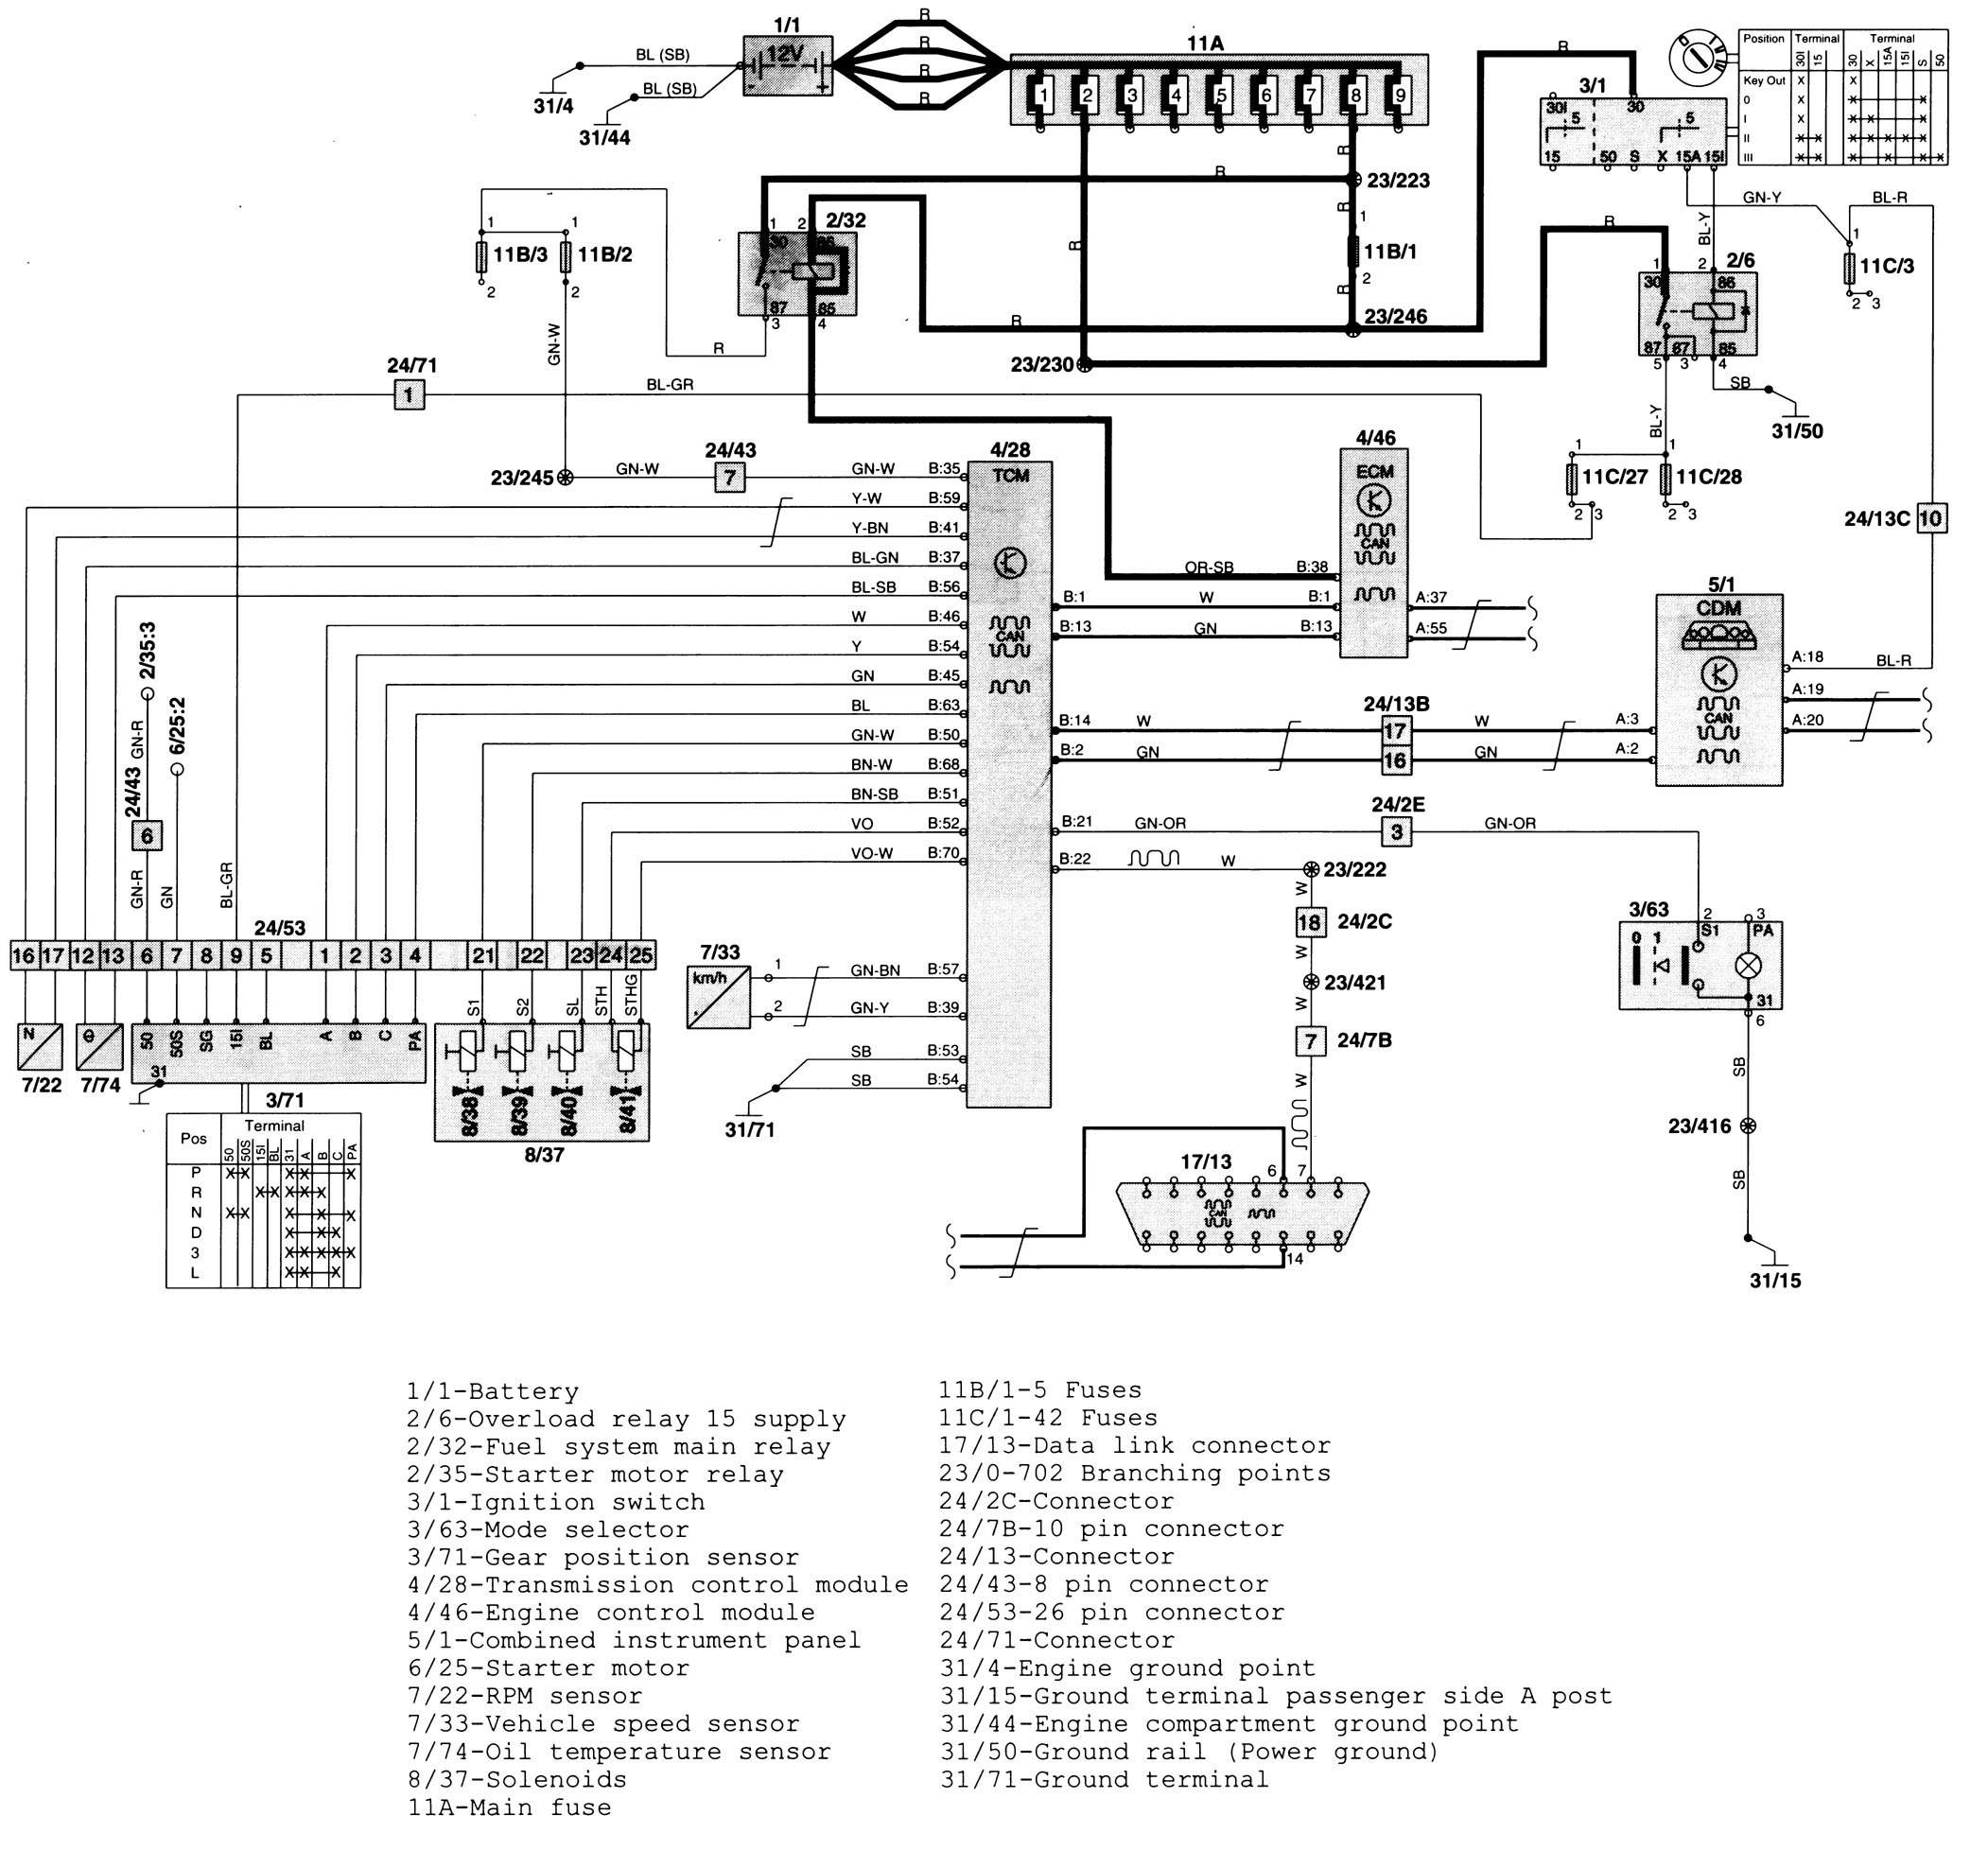 2001 Western Star Transmission Air Diagram Trusted Wiring 1999 Volvo S70 2000 Diagrams Controls Lfw